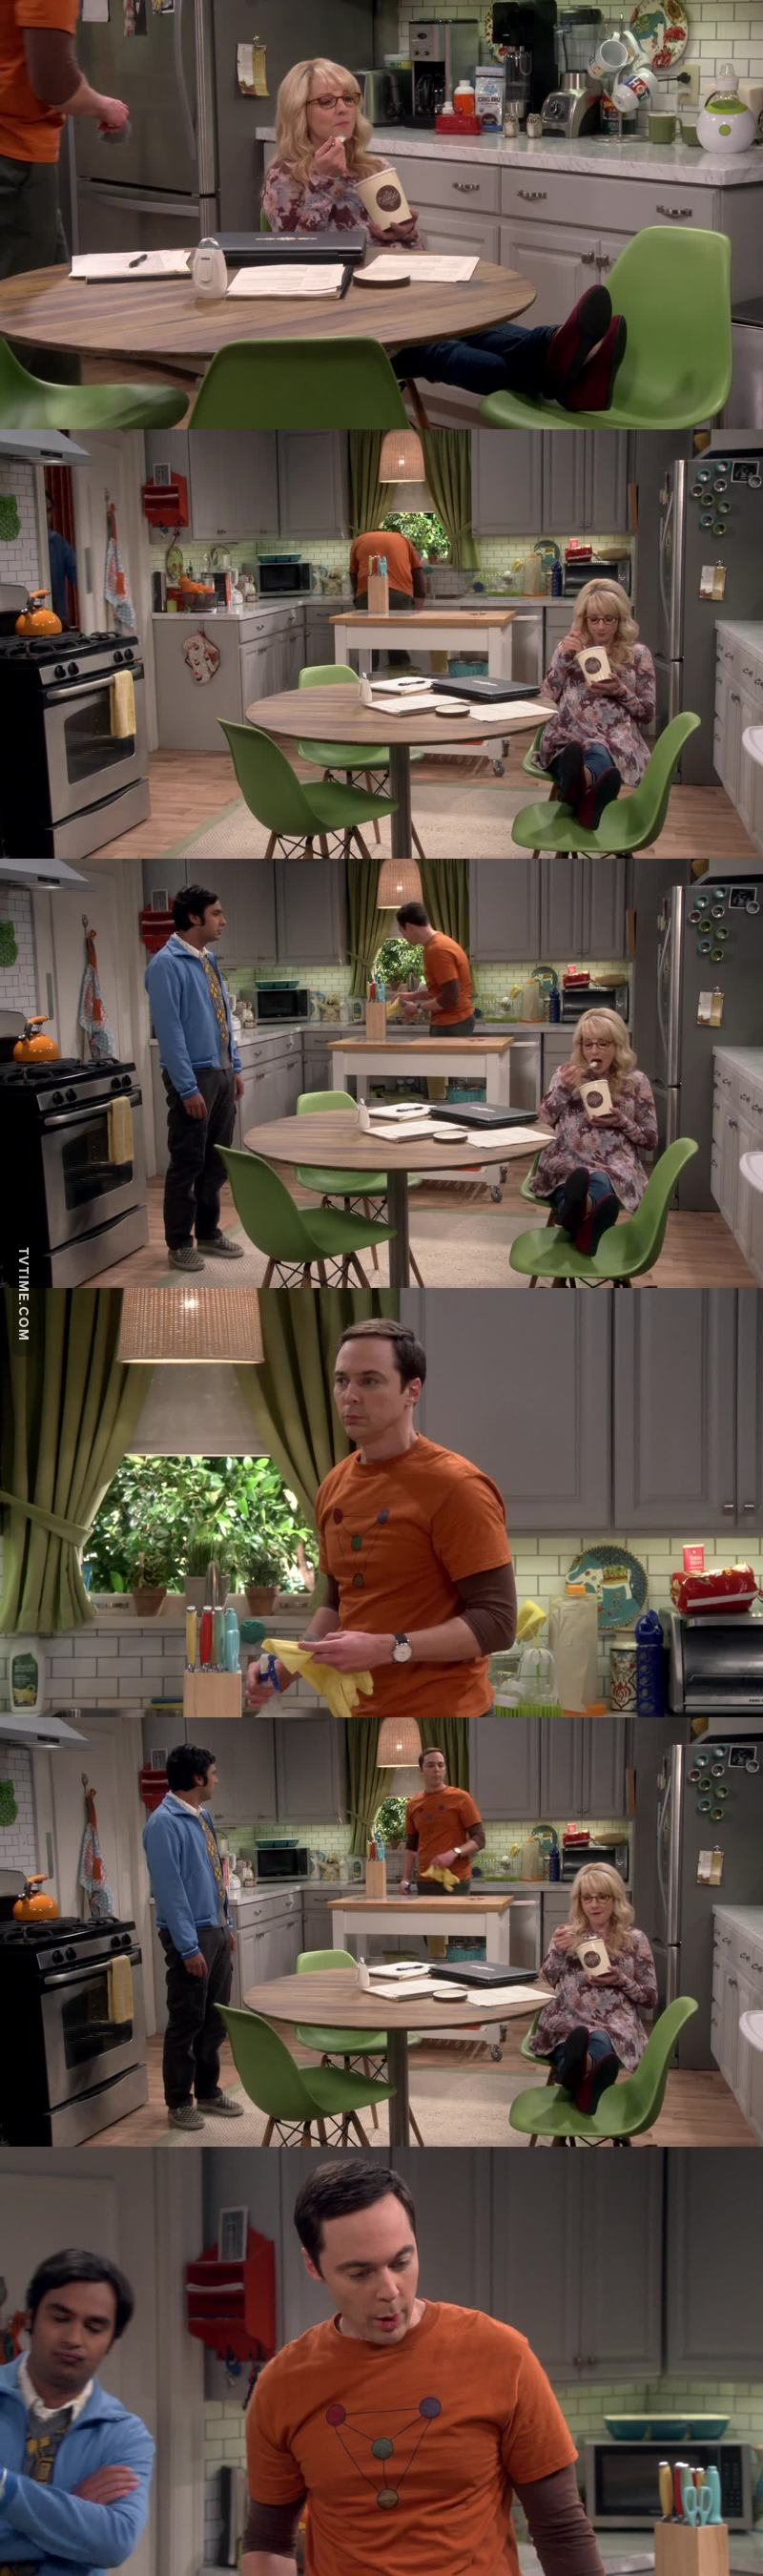 Every time Sheldon realized he has been played, I love it xD